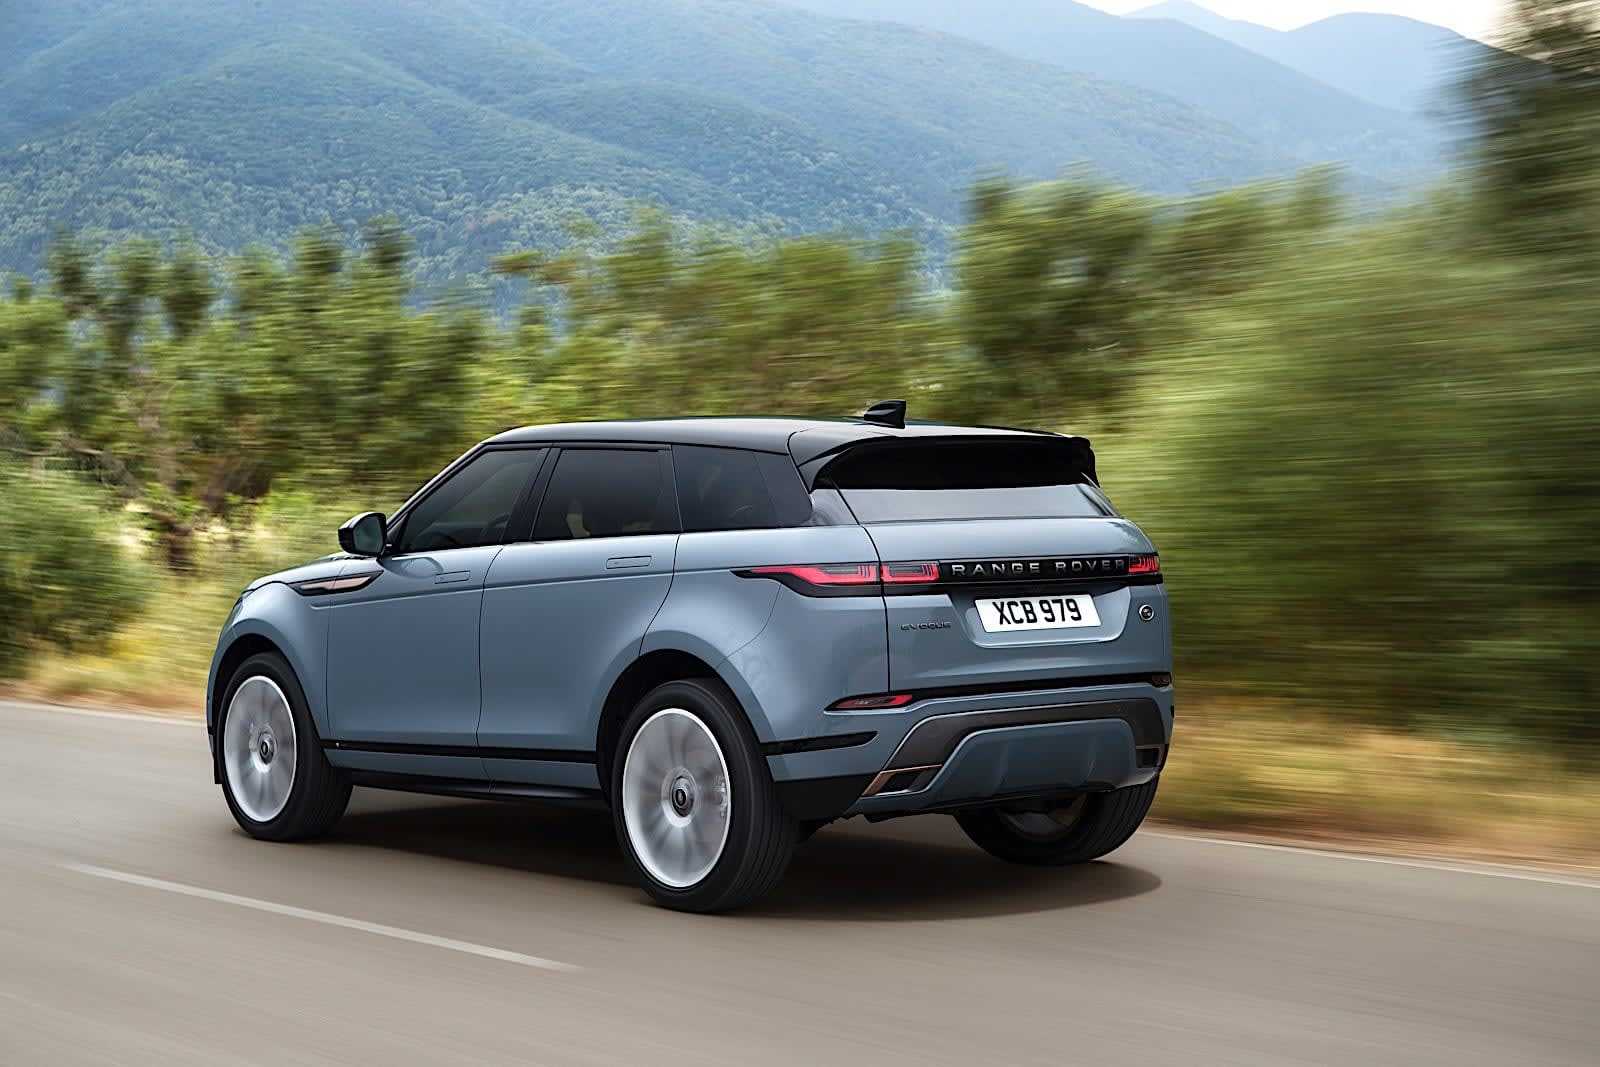 2020 Land Rover LR4 Rumors, Redesign, Release Date, Drivetrain >> Range Rover S 2020 Evoque Blends Style With Sustainability